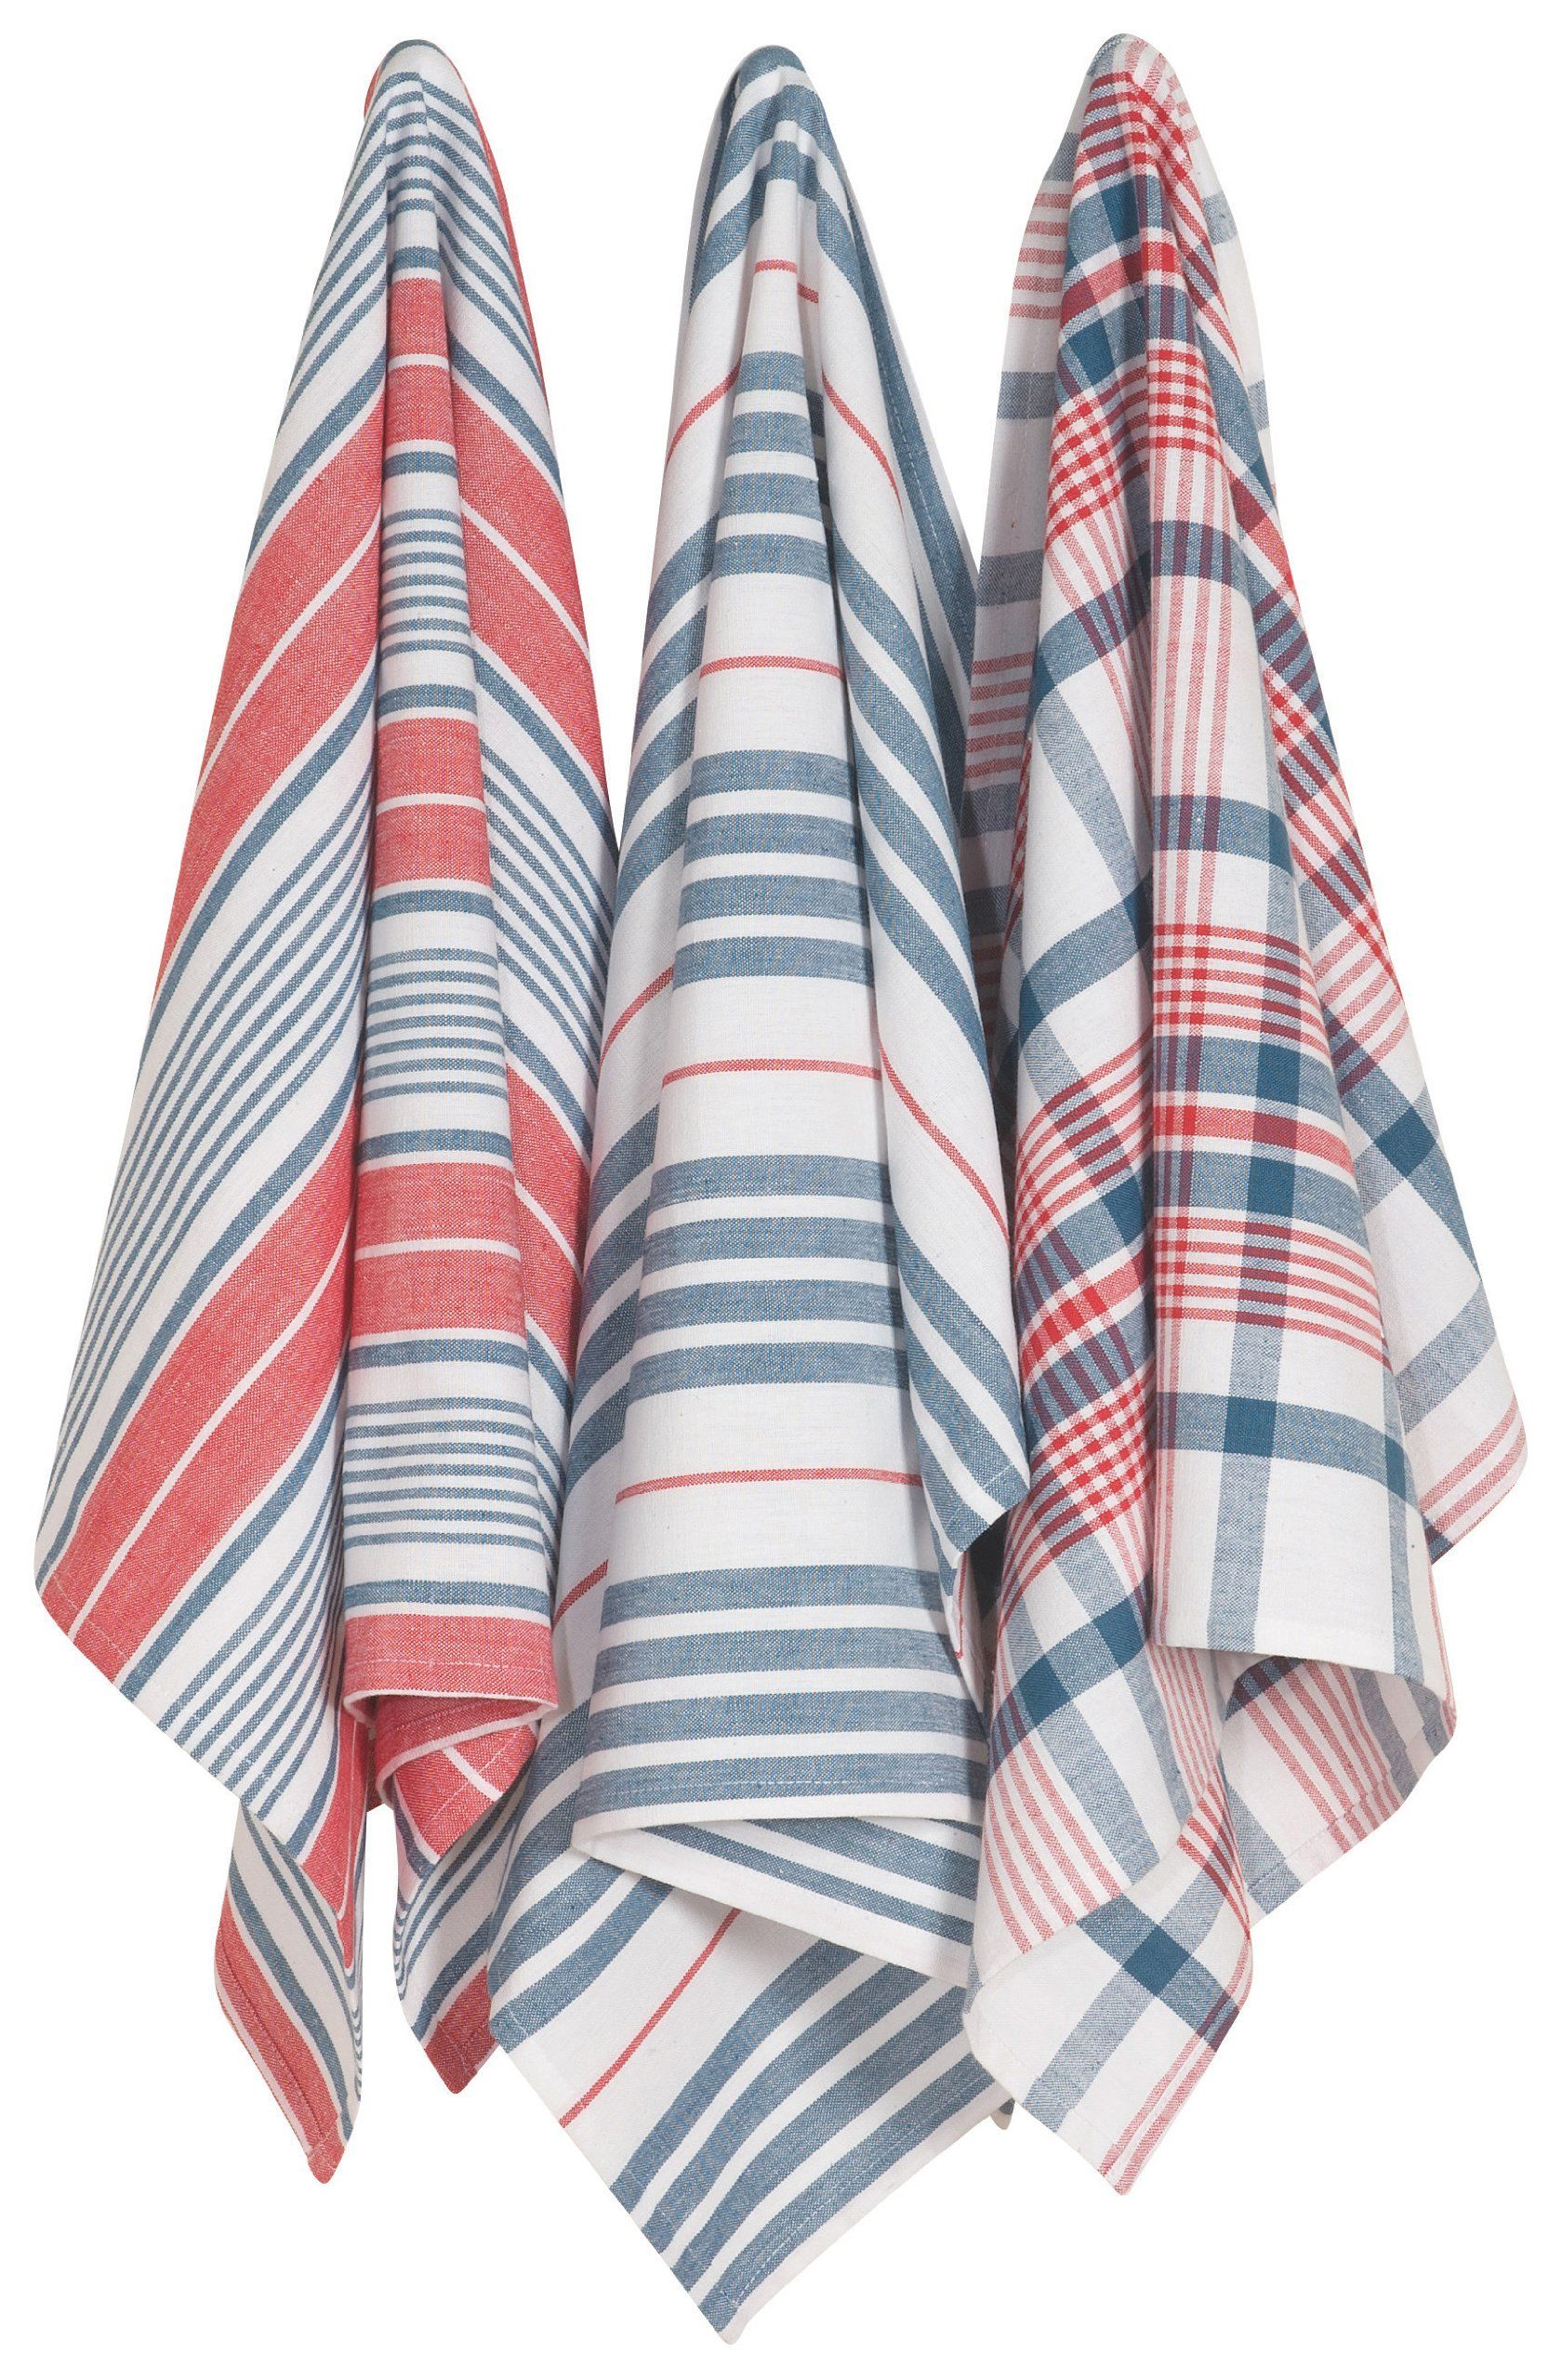 Now Designs Jumbo Pure Kitchen Towel, these towels are fantastic ...